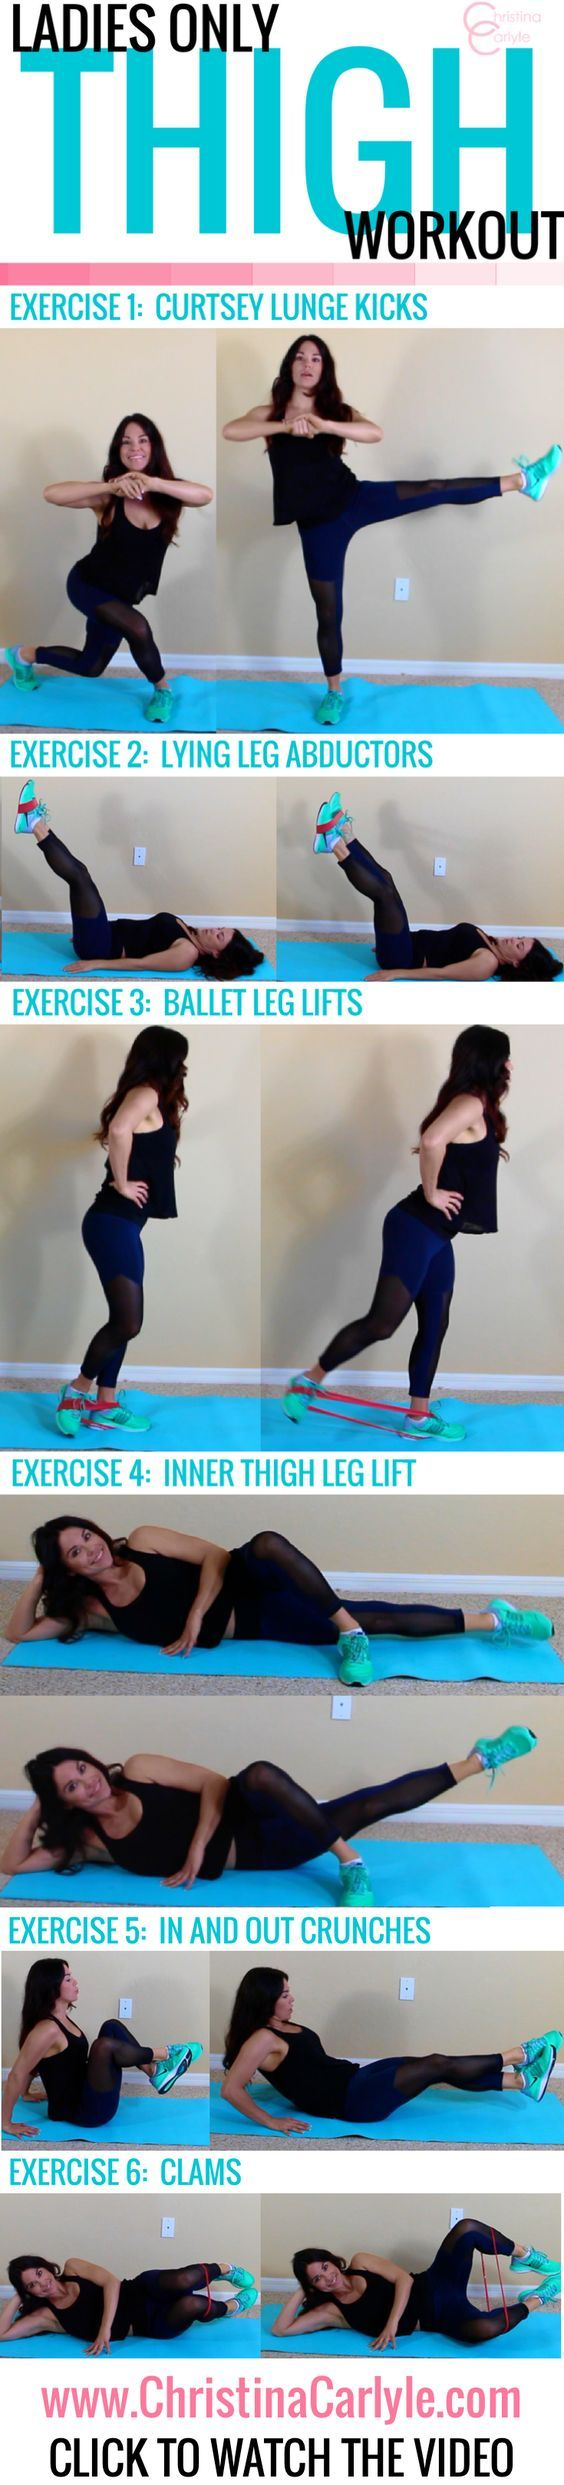 6 Inner Thigh Exercises - that will thin your thighs - and not build bulk. These inner thigh exercises make up a perfect thigh workout for women.